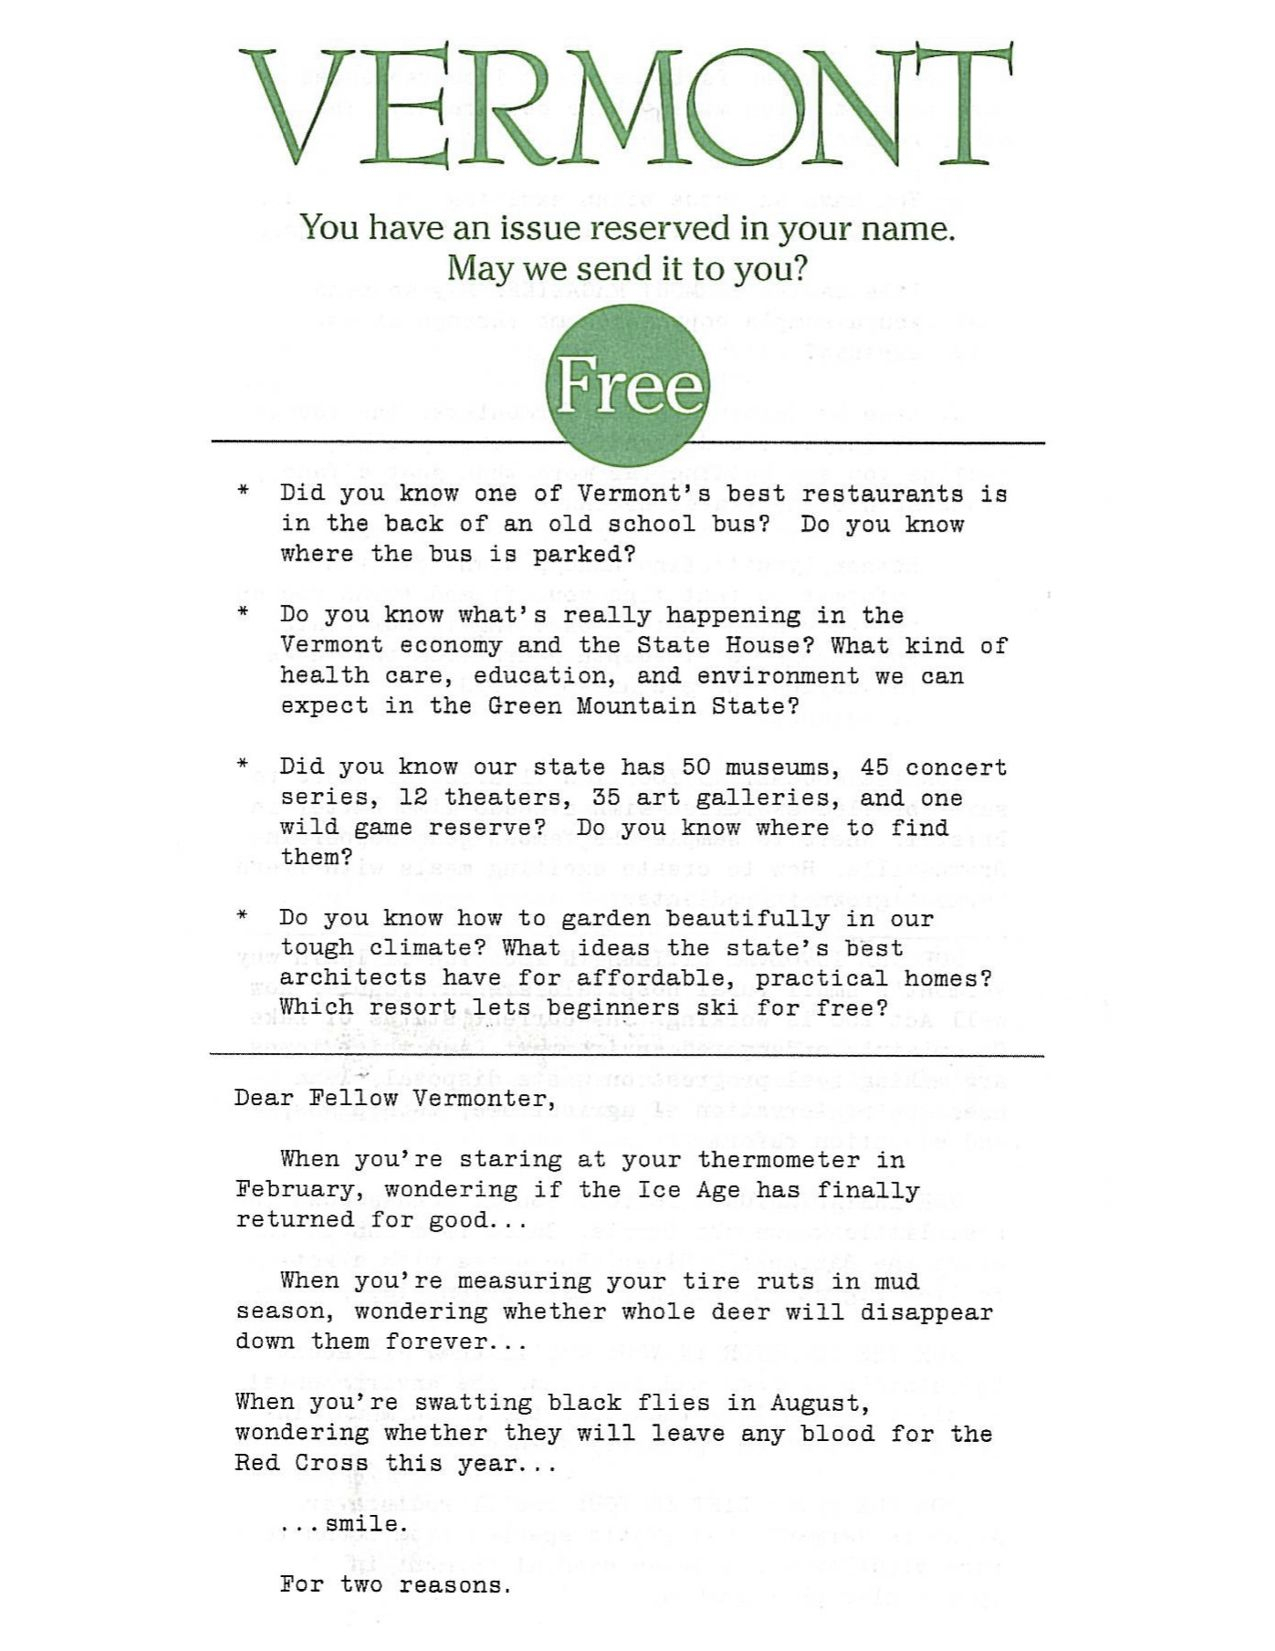 Direct Mail Sales Letter Template - This Was My First Of Three Winning Direct Mail Sales Letters for